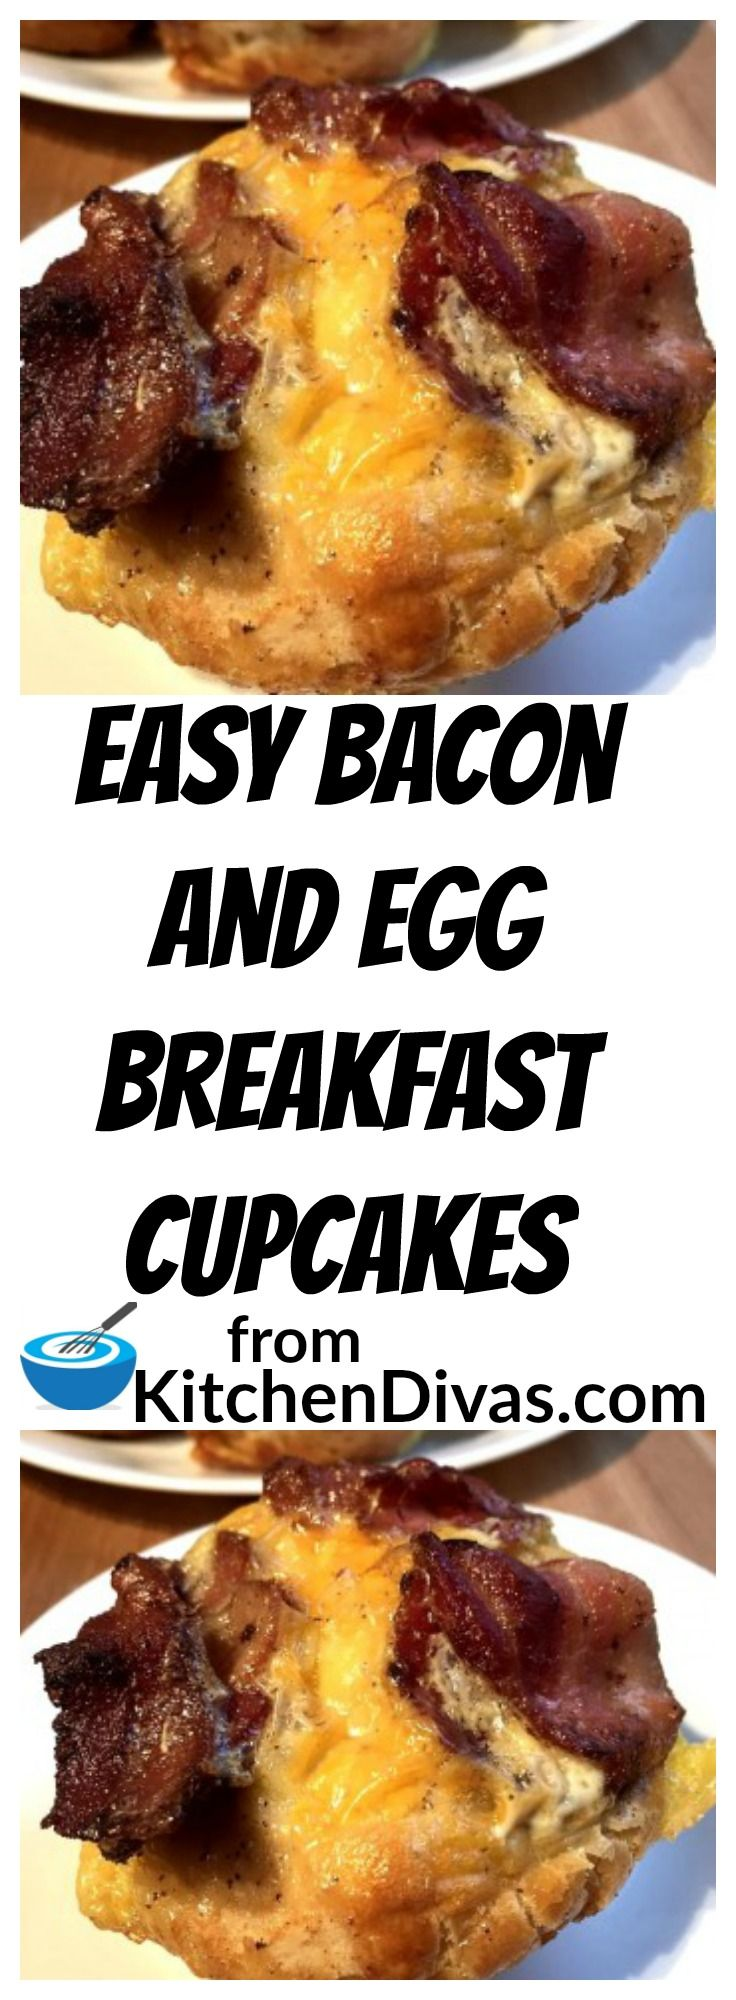 Awesome tasting and easy too! I always keep a tube of Pillsbury Grands Homestyle refrigerated buttermilk biscuits in the fridge and this is the recipe I make most often. You literally can use anything you have handy in your refrigerator to make these Bacon and Egg Breakfast Cupcakes taste different every time! Also, depending on who you are feeding, you can make each one different to accommodate different tastes. Eggs, bacon and cheese. A perfect combination. You have to give these a try!